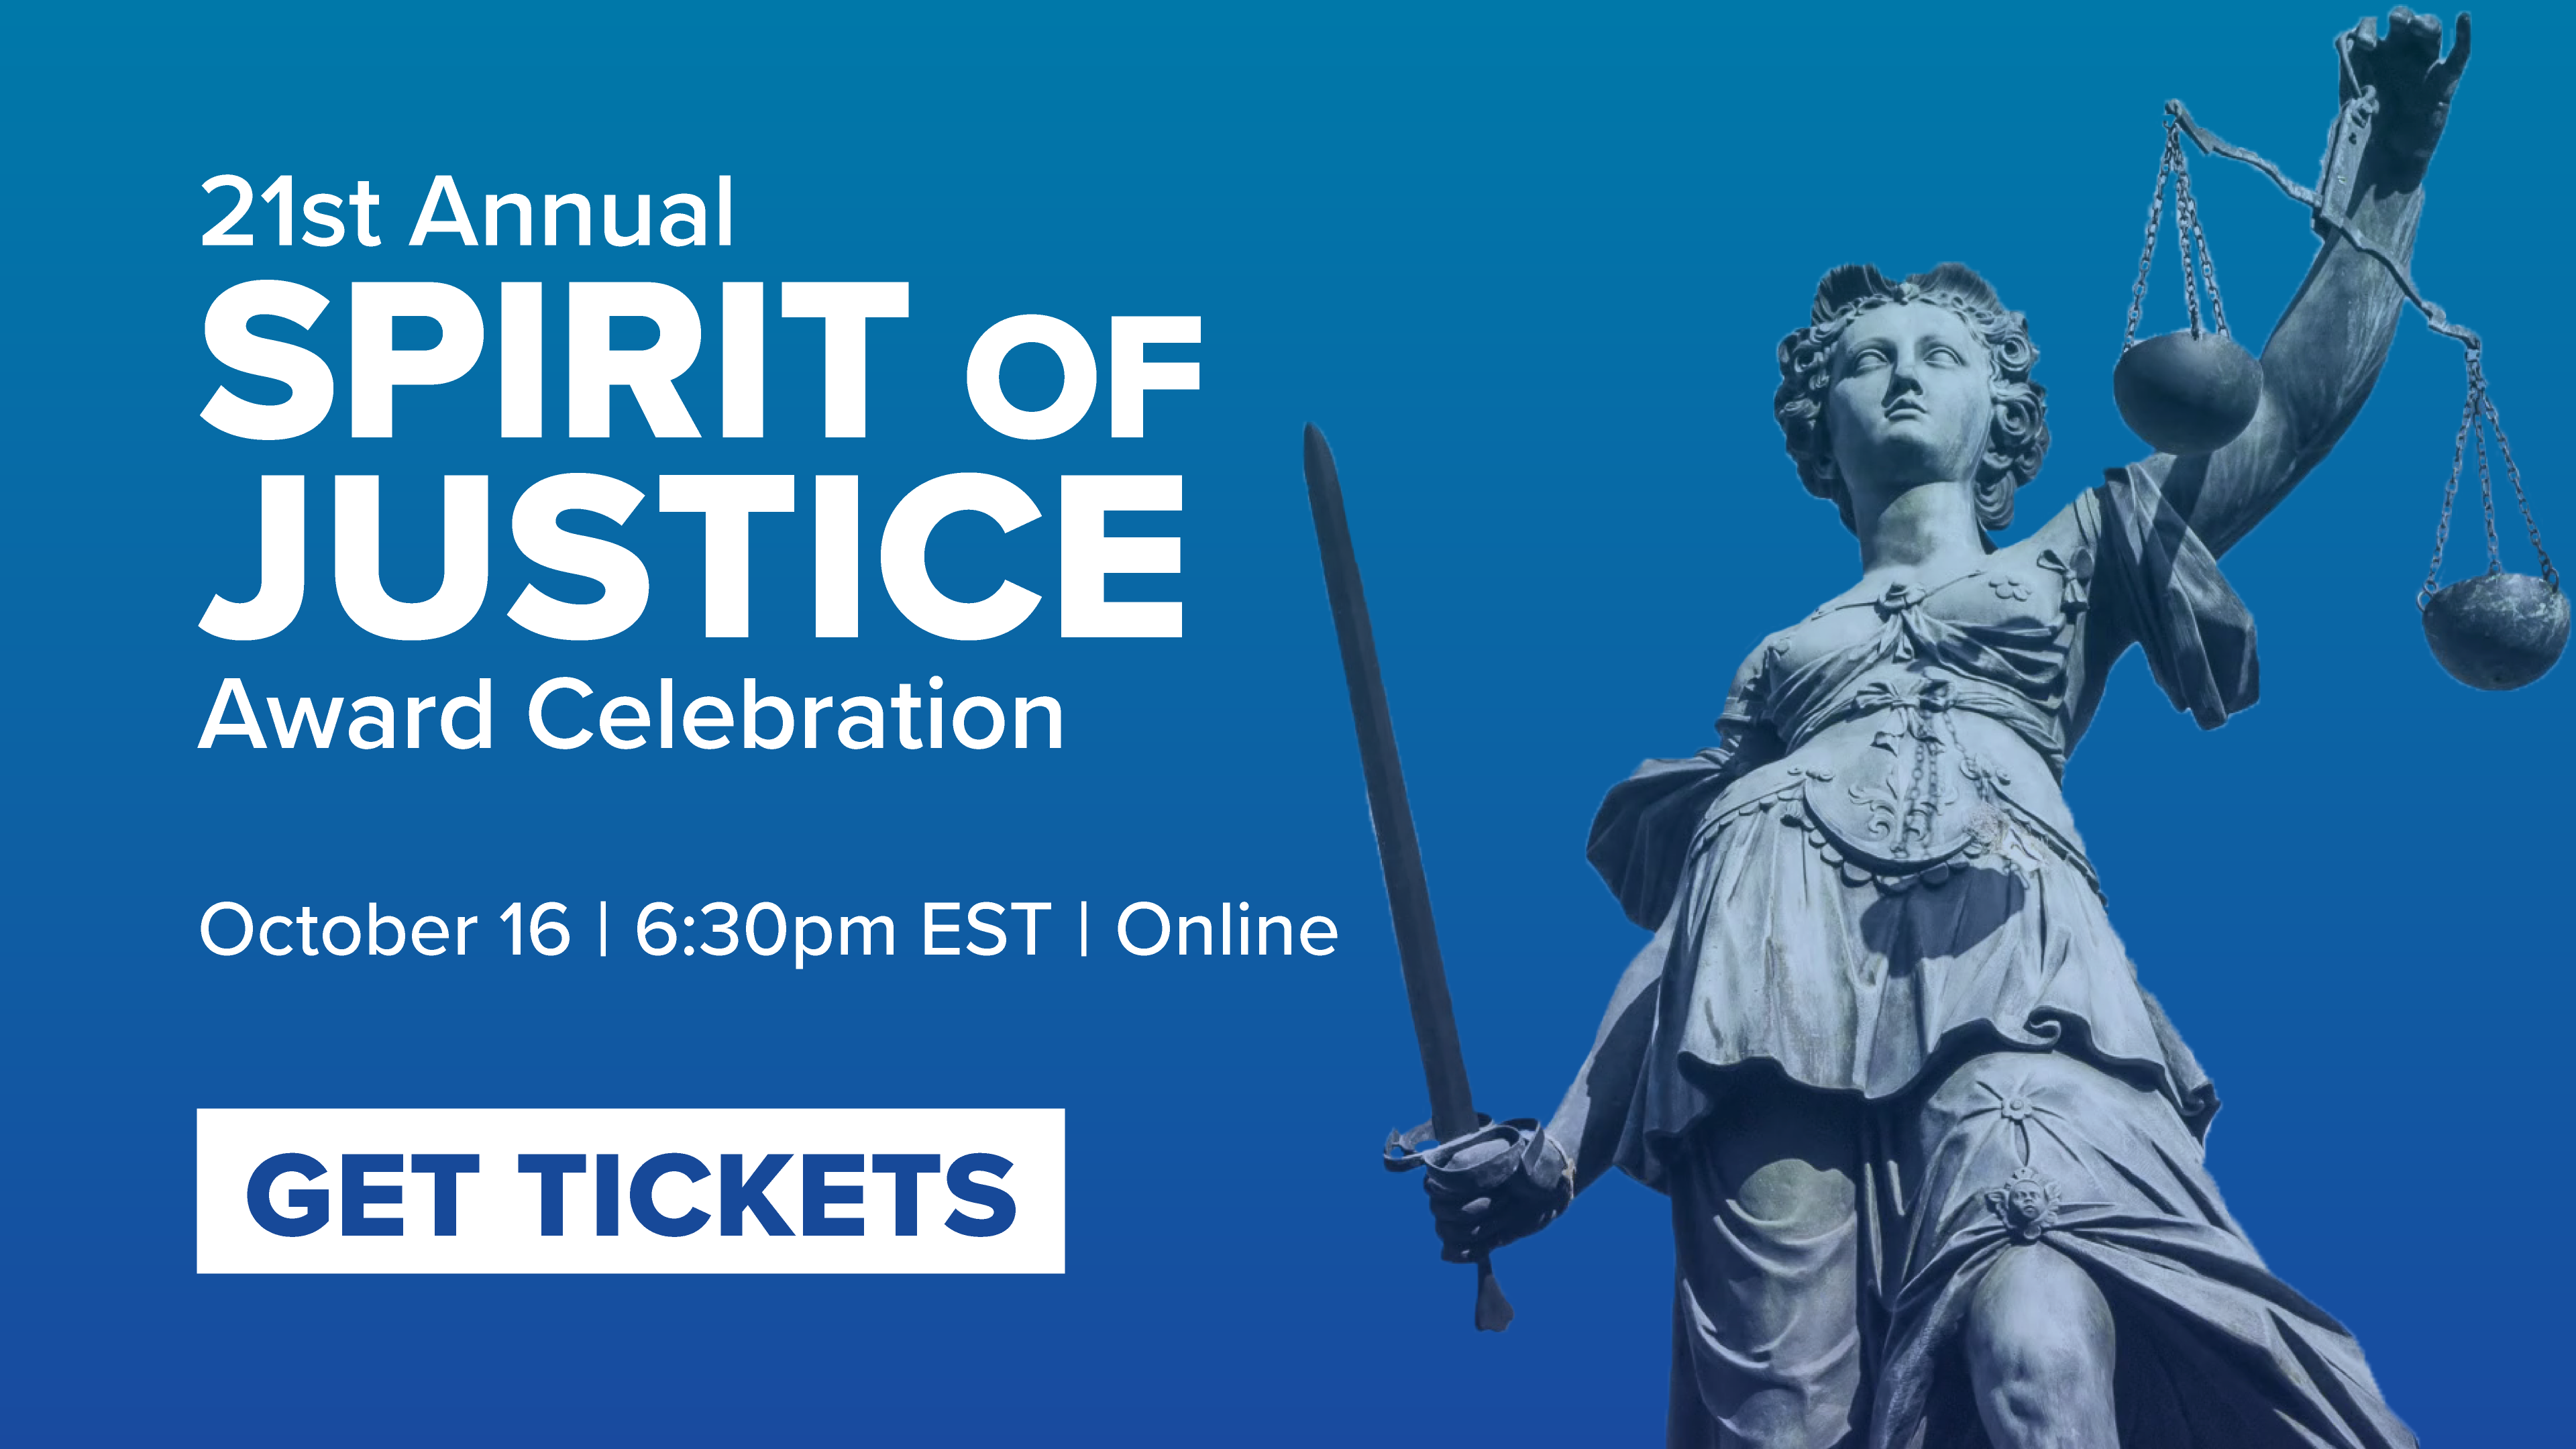 21st Annual Spirit of Justice Award Celebration. October 16, 2020, 6:30pm EST, online. Get tickets.